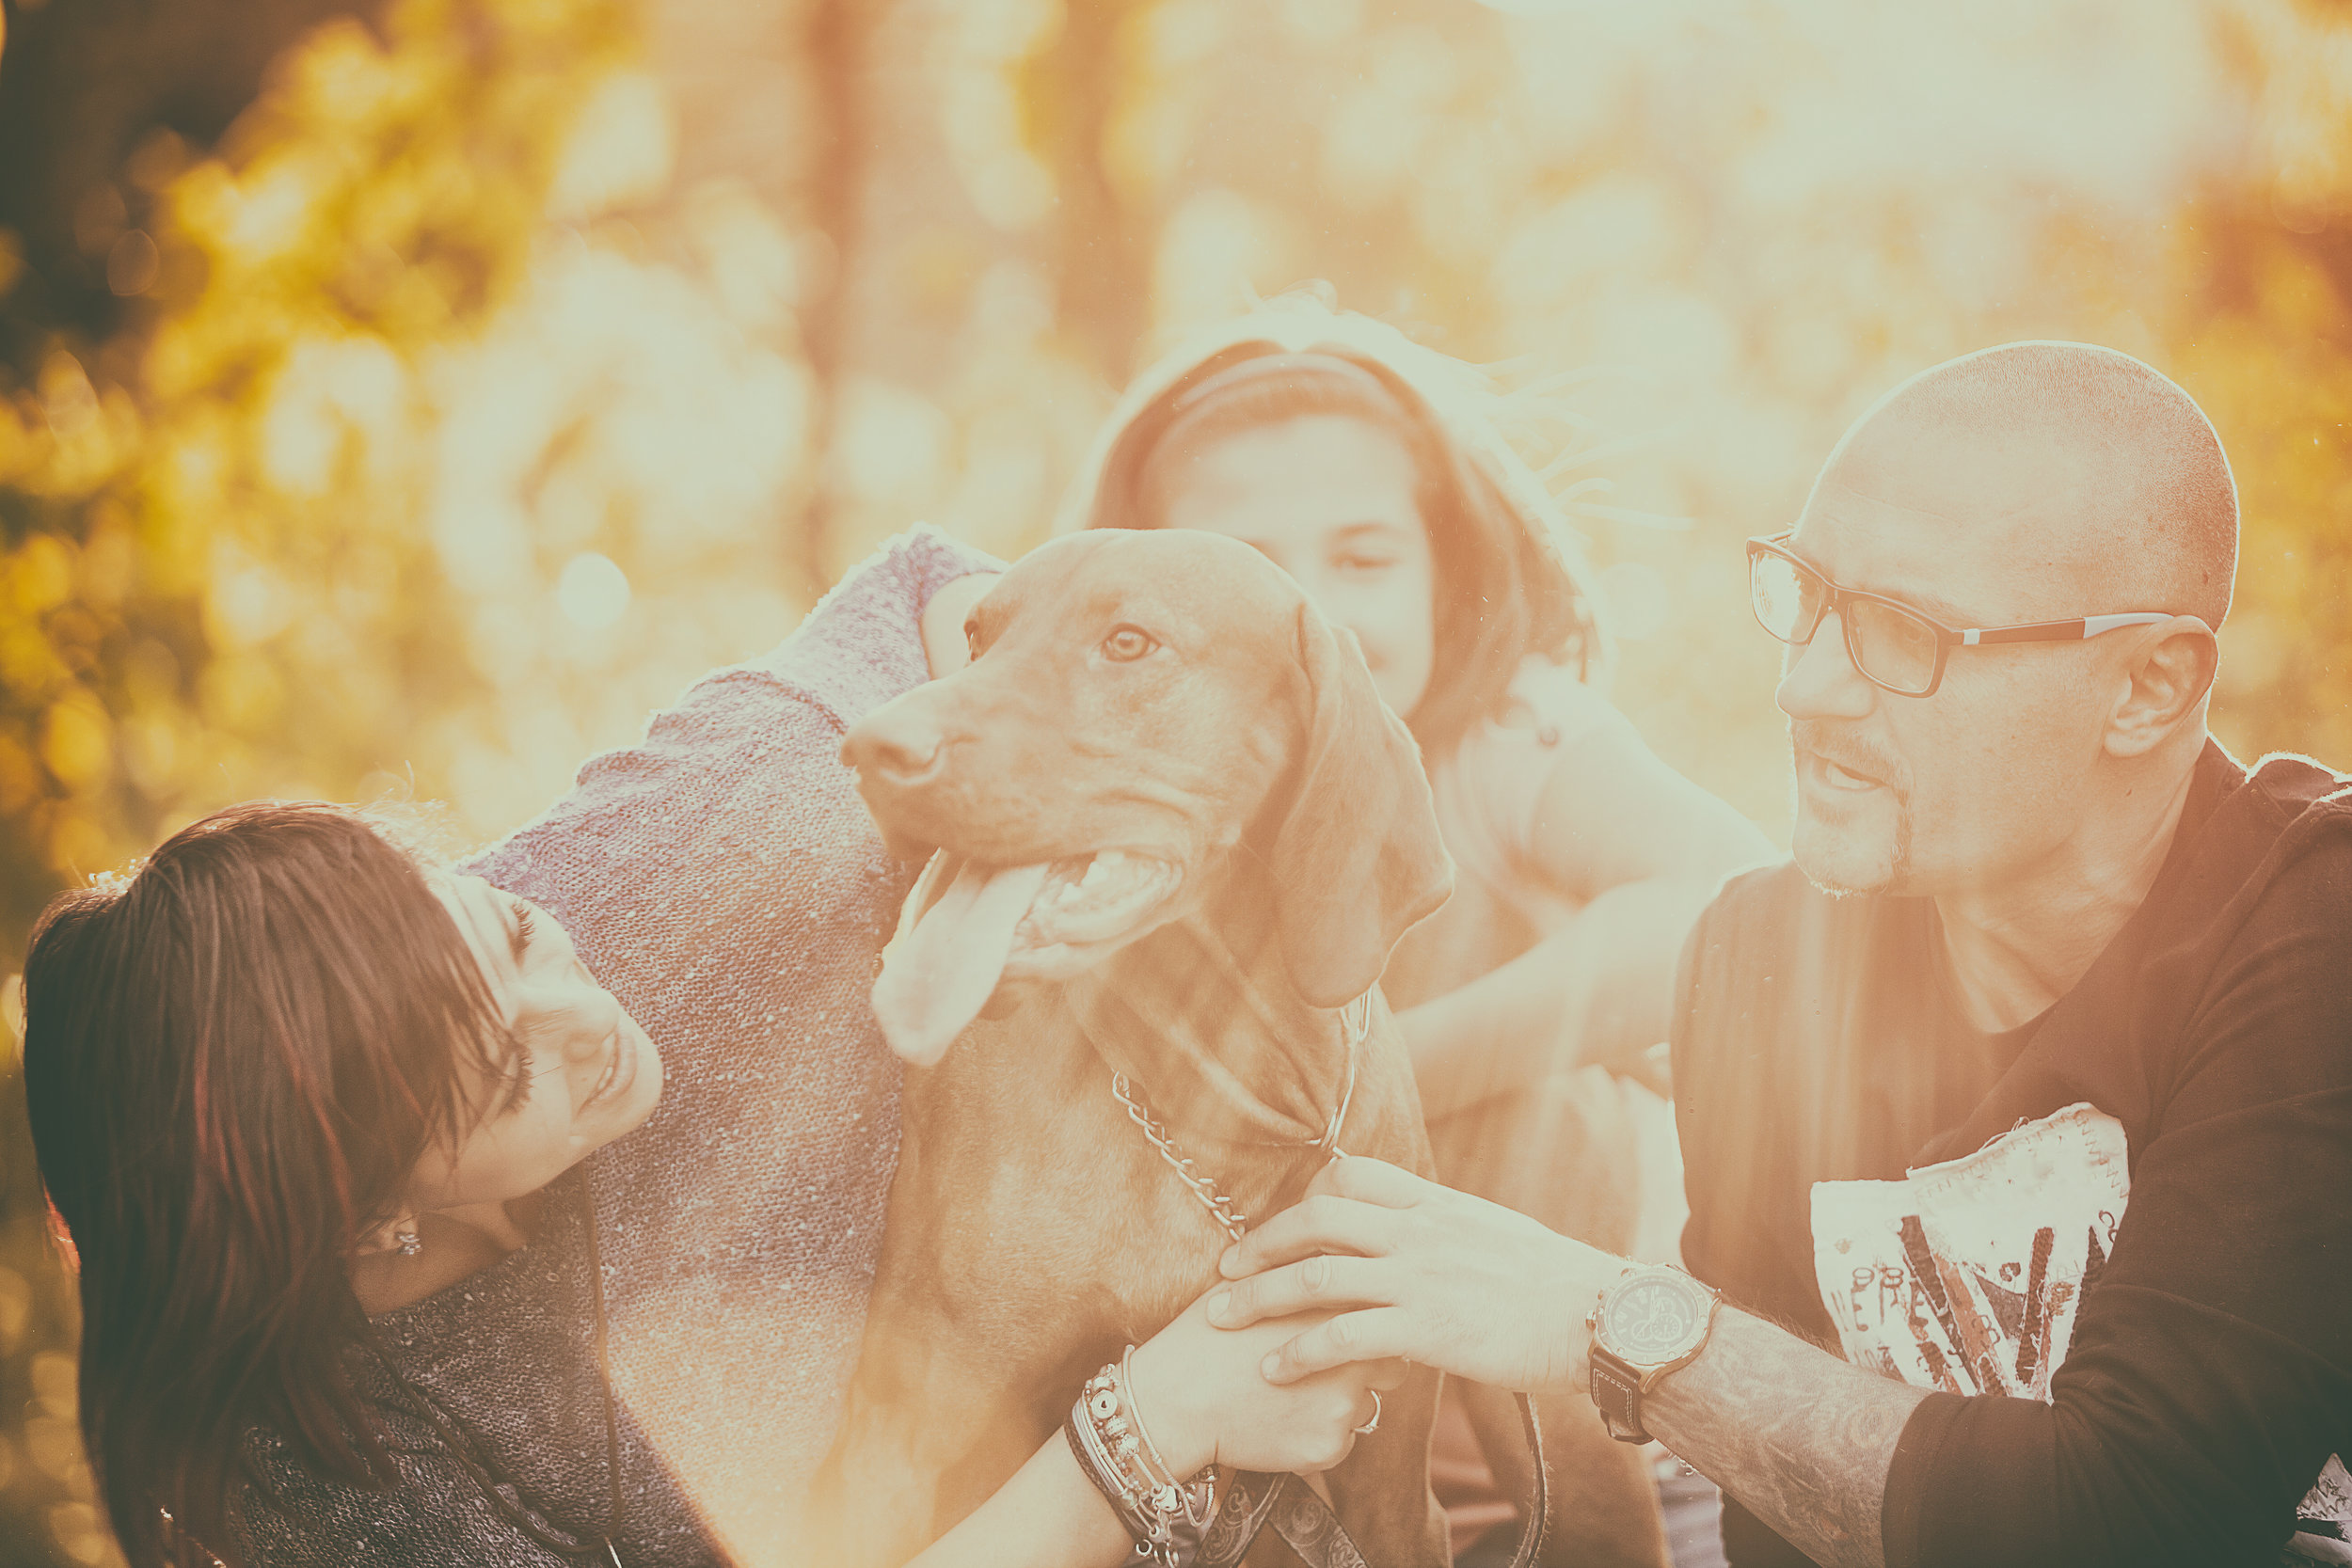 family-playing-with-their-dog-in-the-park-PYA66AS.jpg